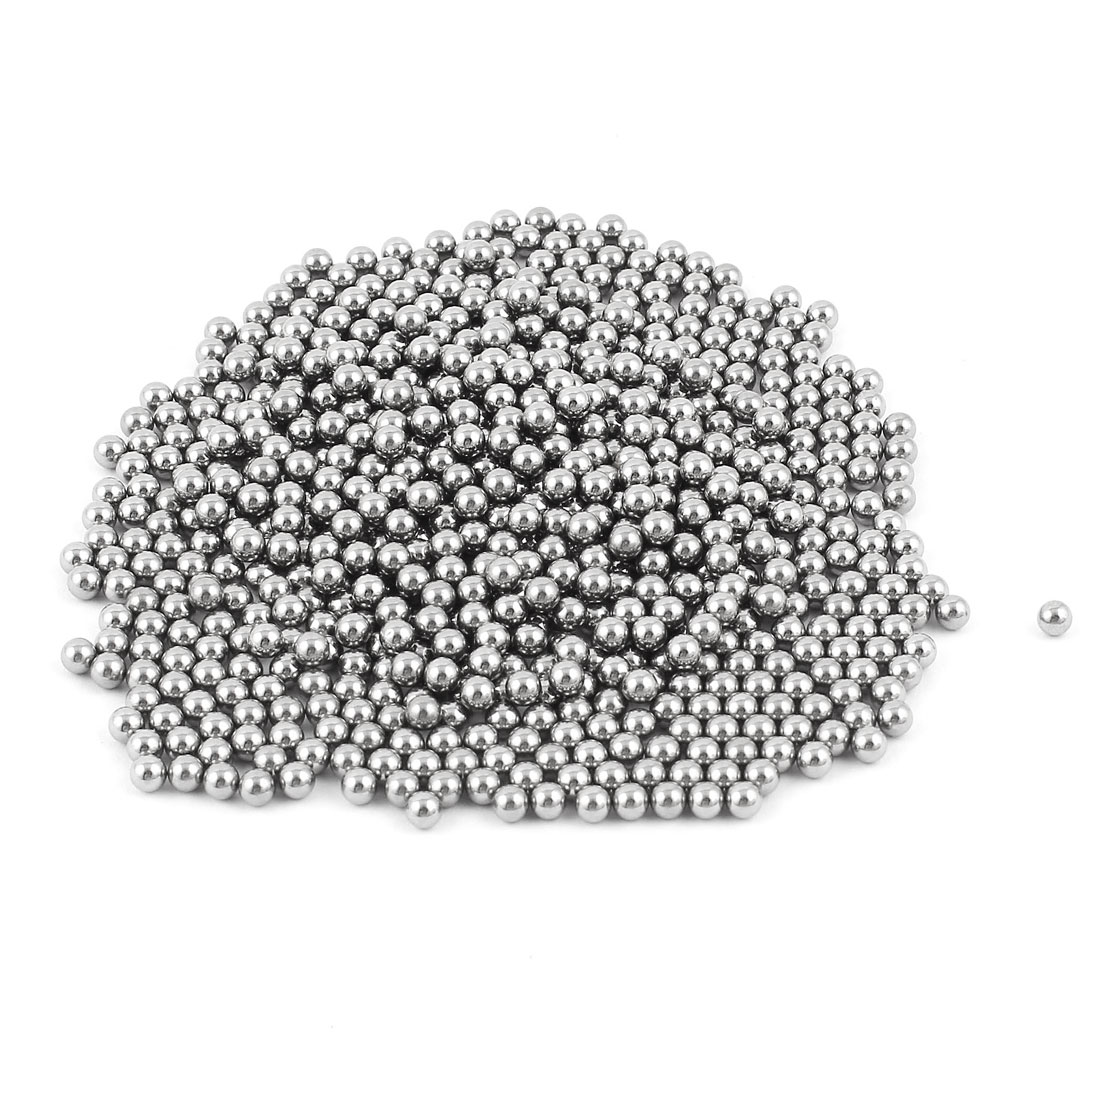 Silver Tone 4mm Bearing Steel Balls Bicycle Bike Spare Parts 750 Pcs